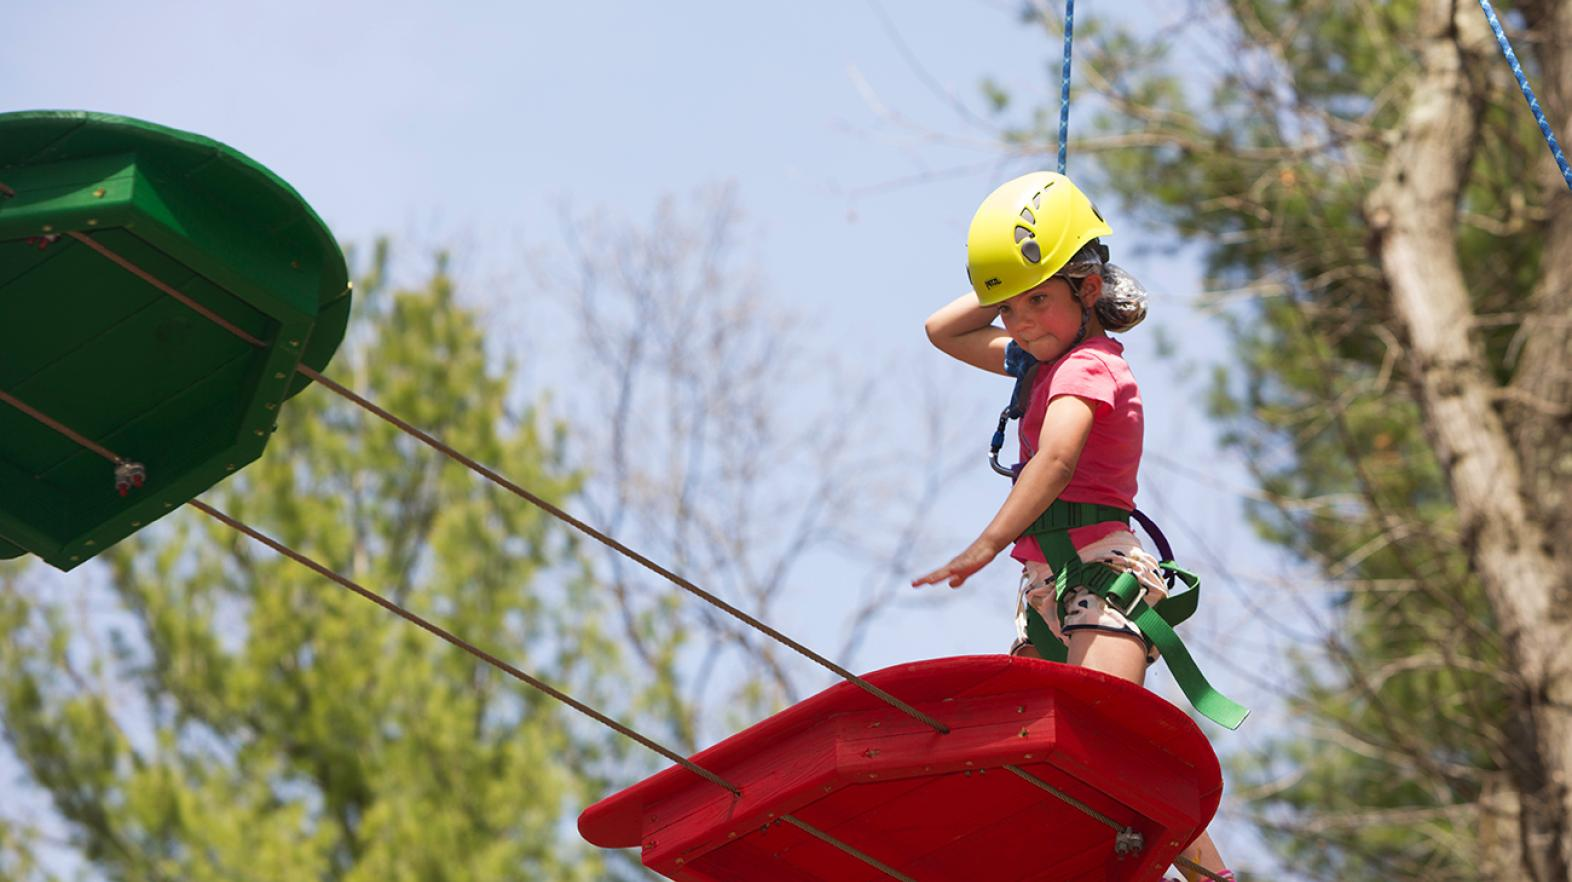 Young girl focusing on the challenge course at East Campus